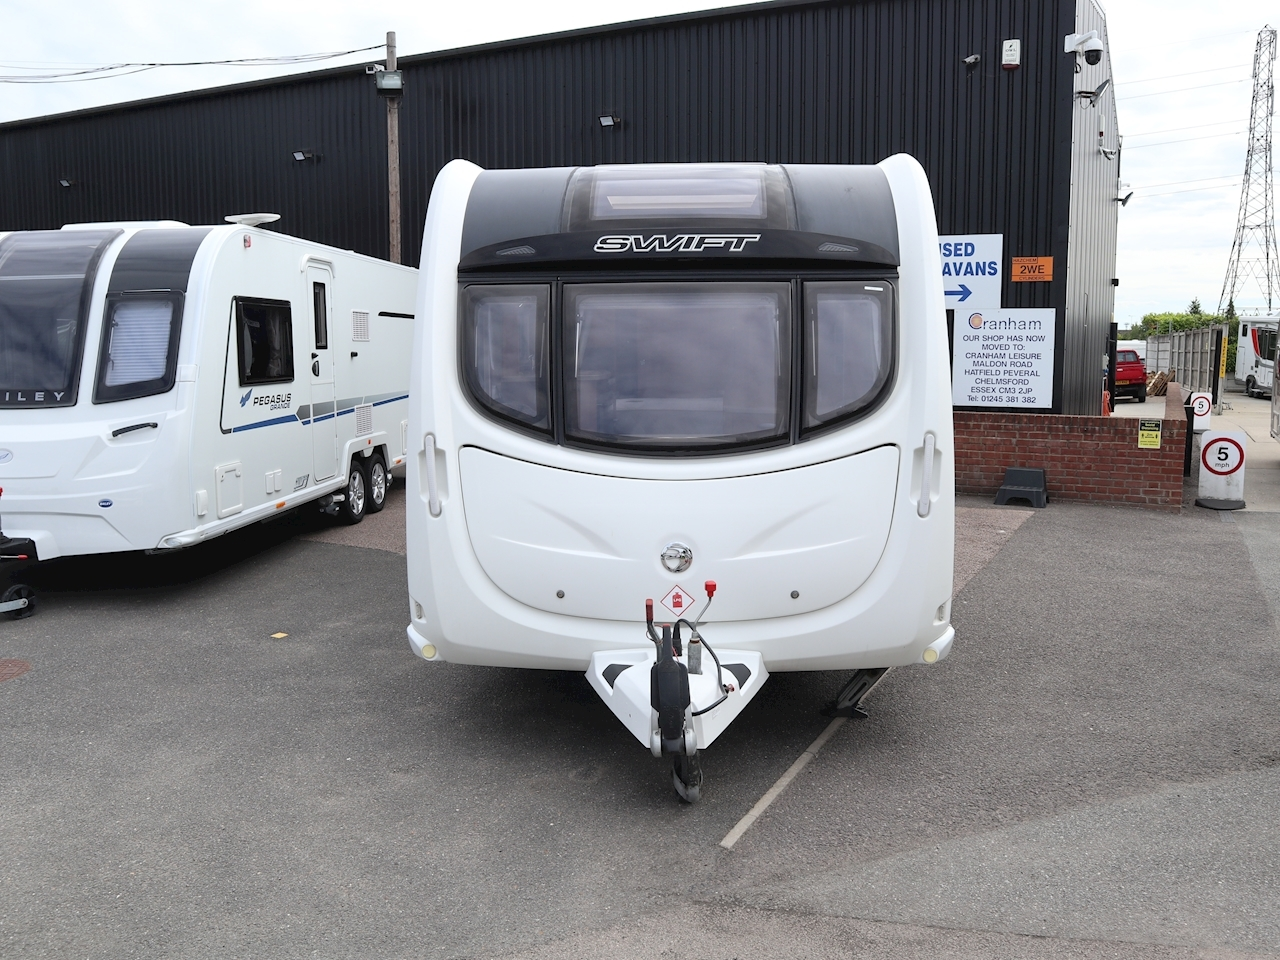 Swift Challenger 580 - Large 1